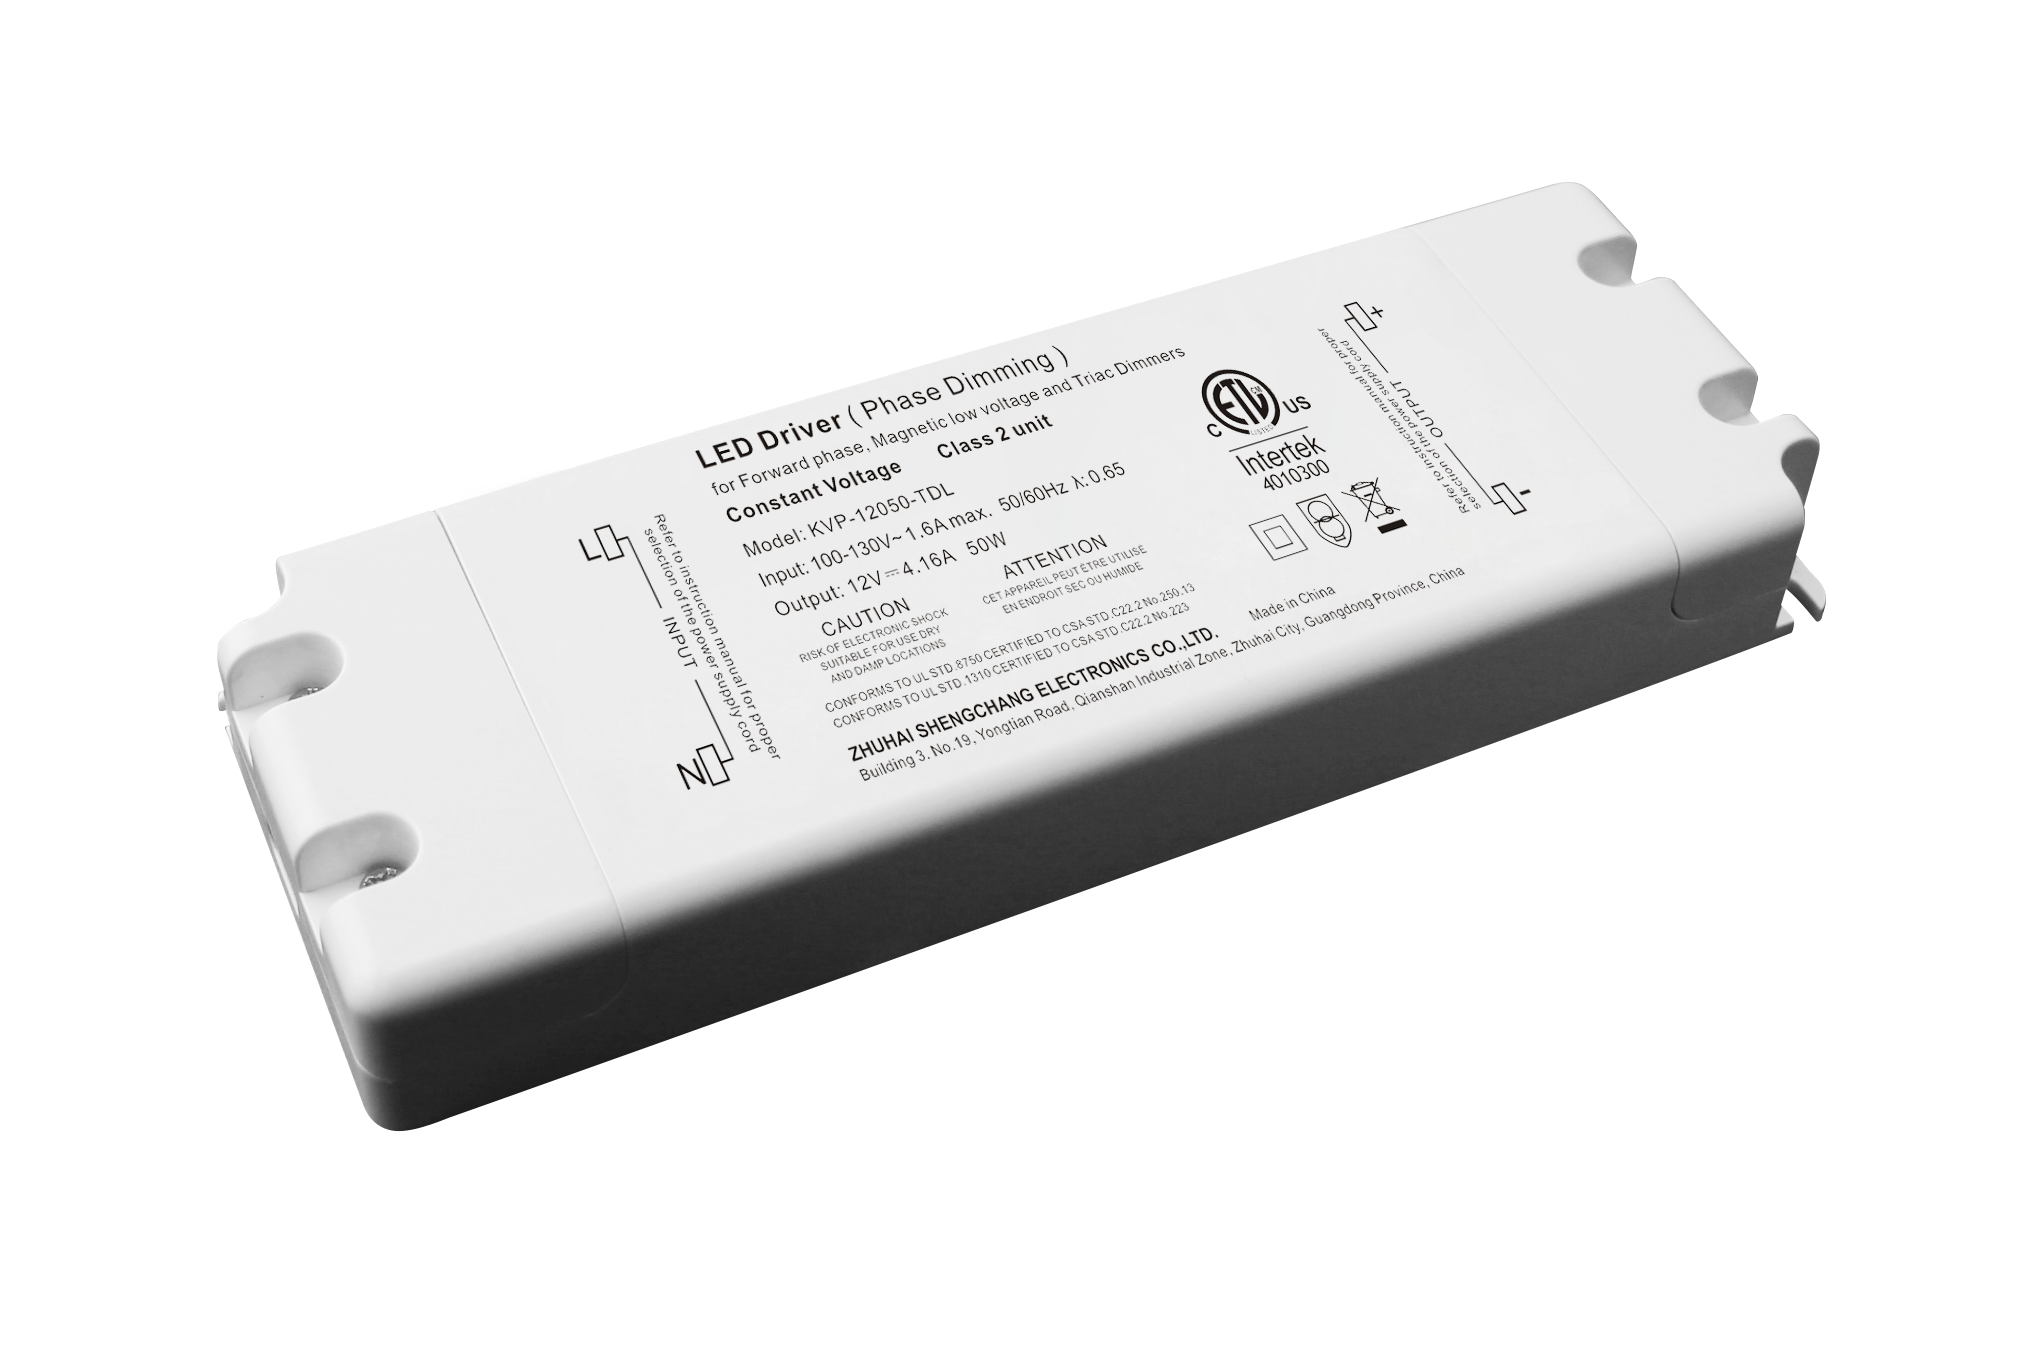 120VAC KVP series 50W constant voltage Triac dimmable driver